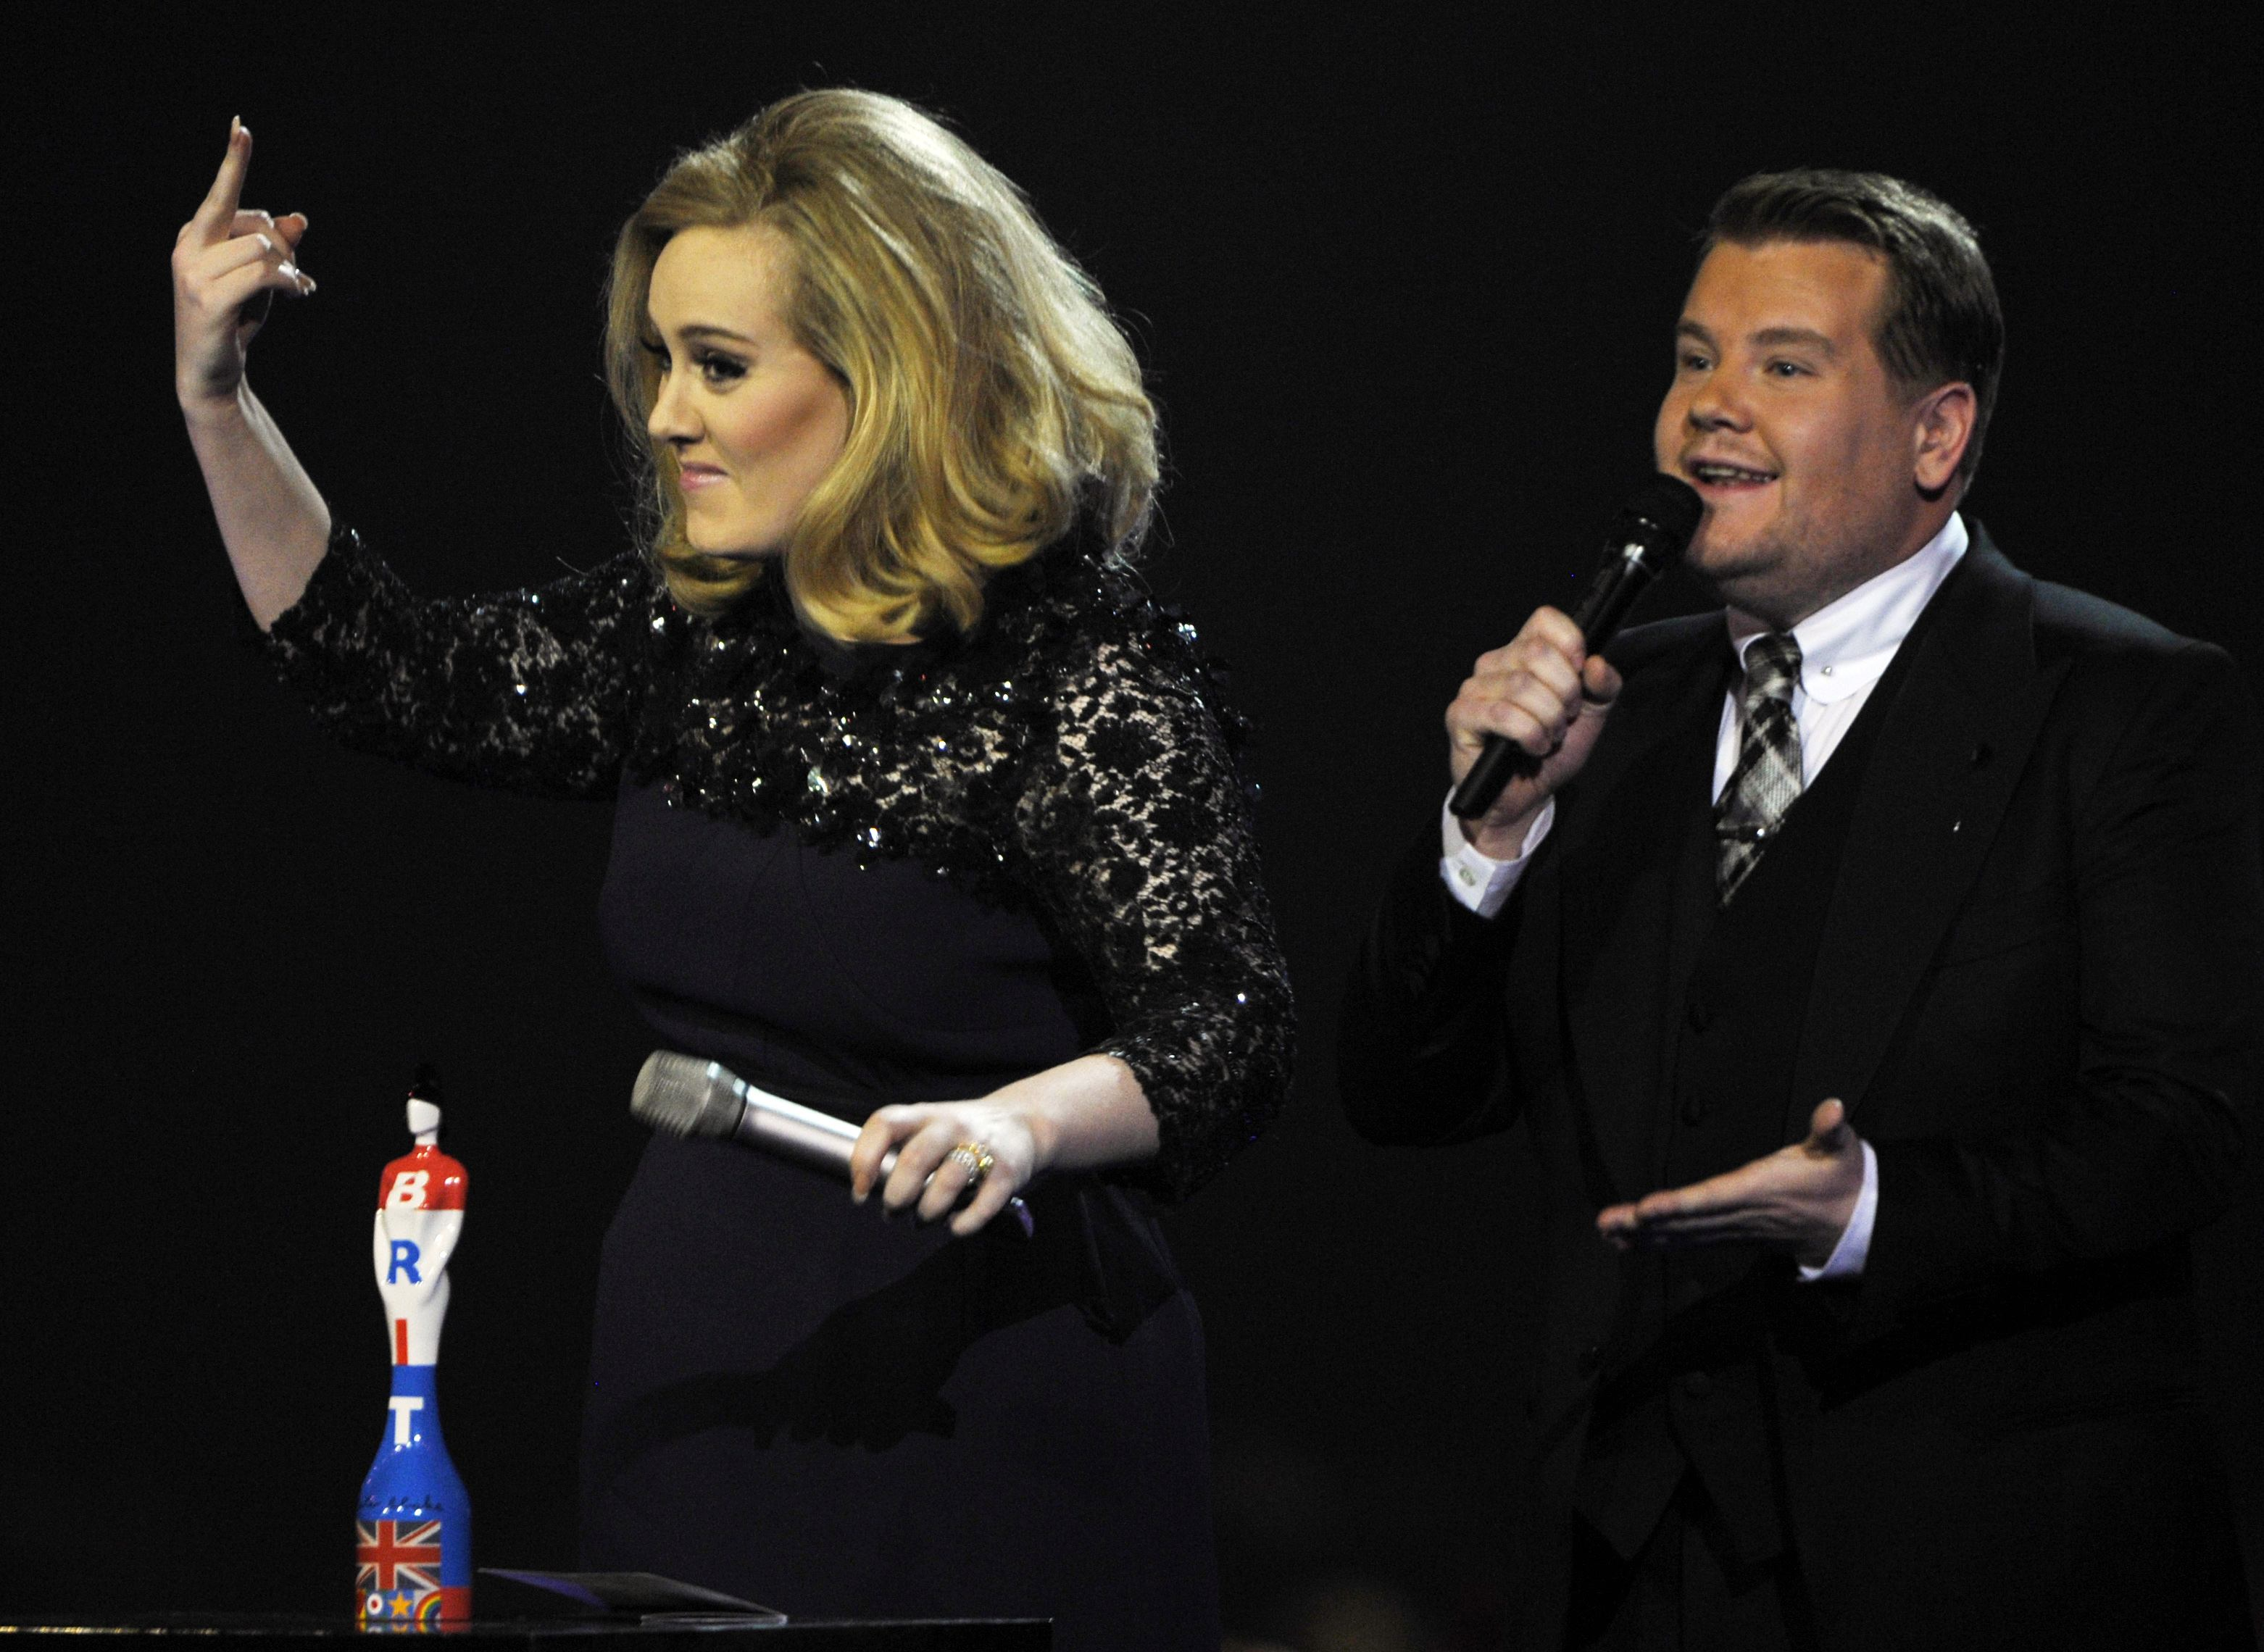 Adele makes her feelings clear after James Corden cuts short her speech (Picture: Reuters)